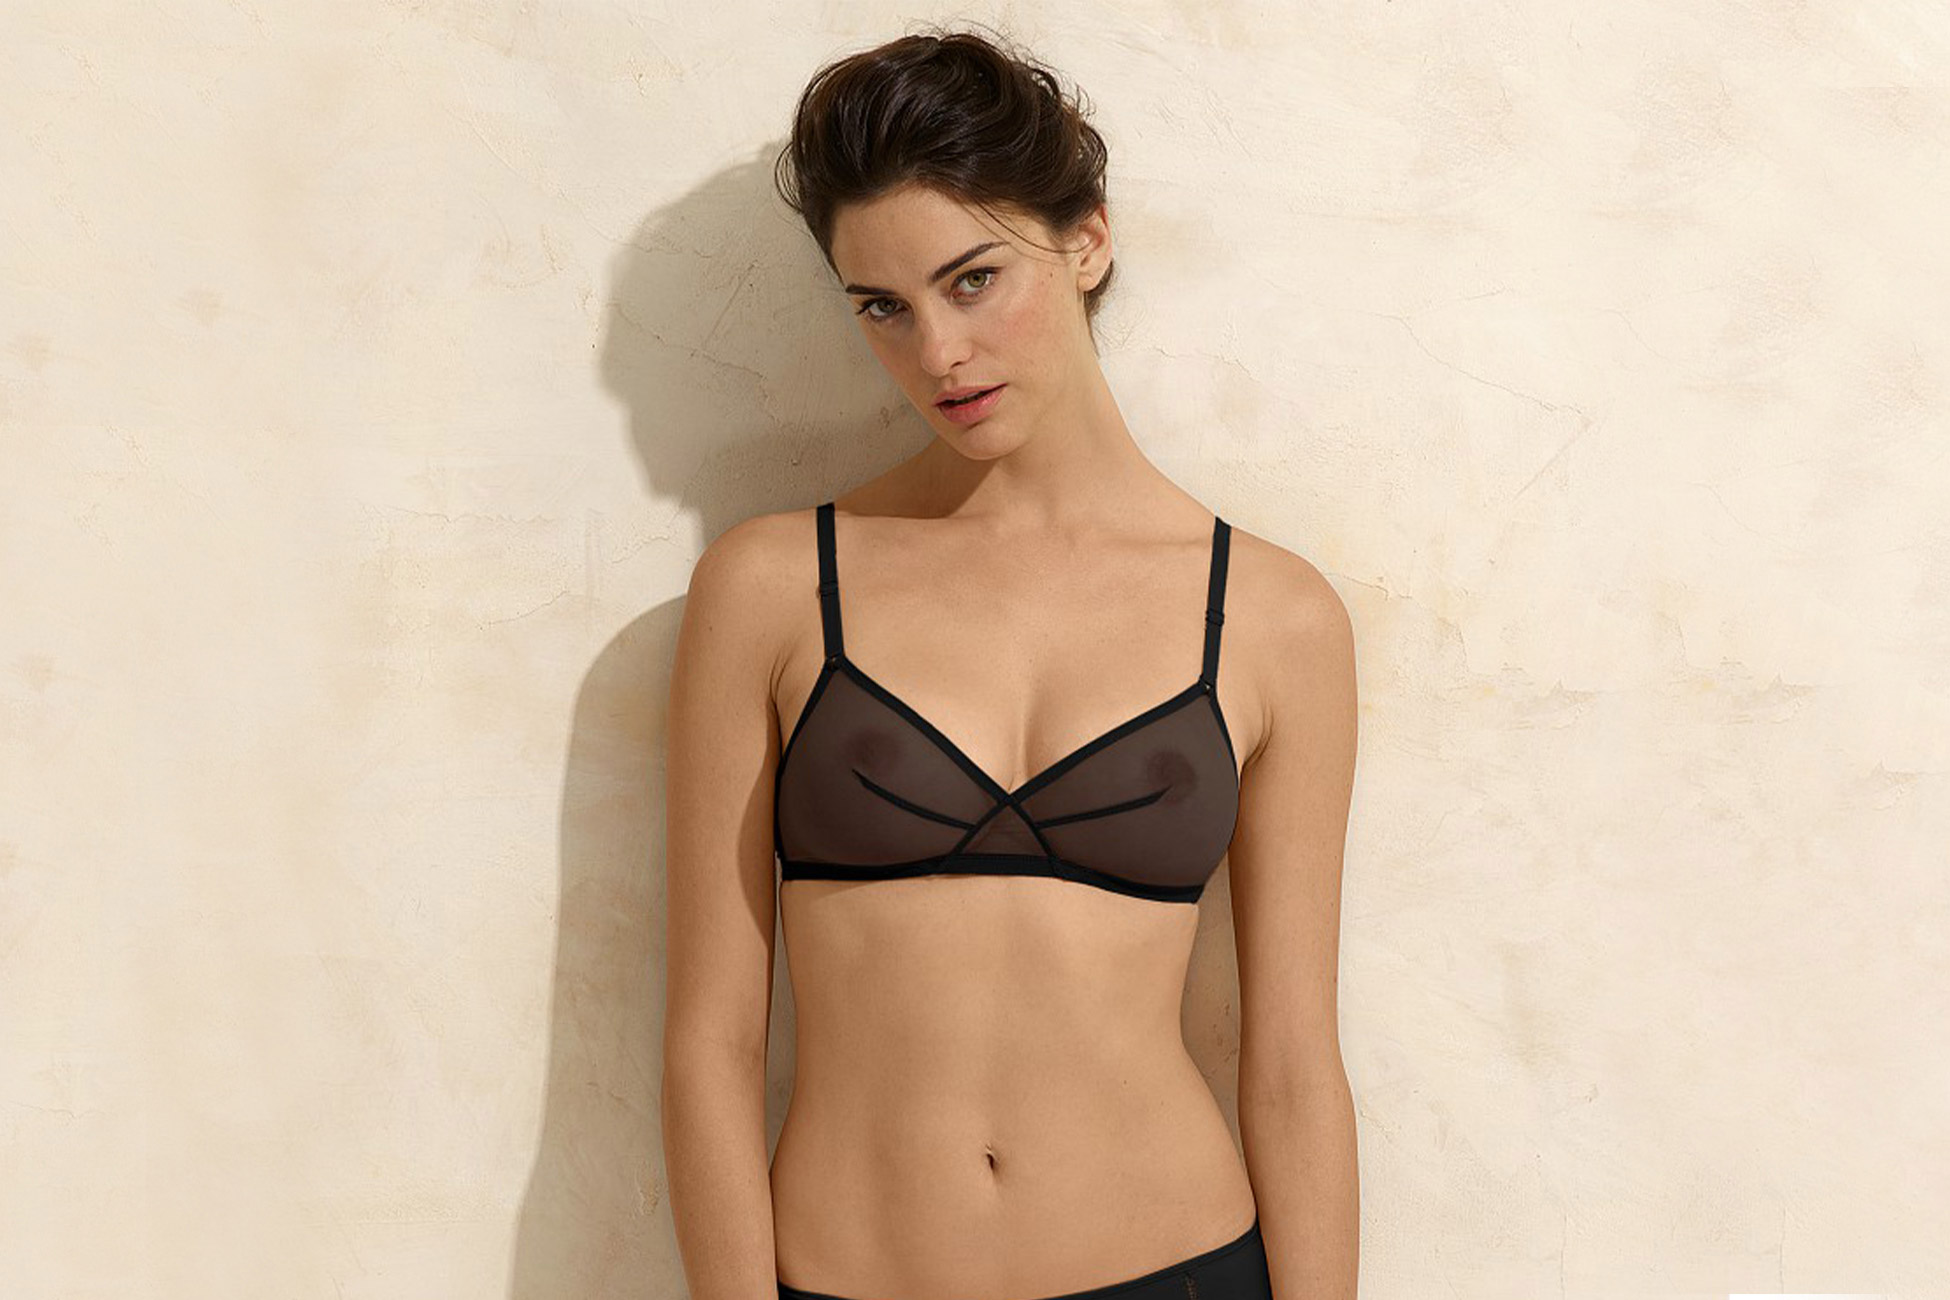 Bel Triangle bra standard view 1